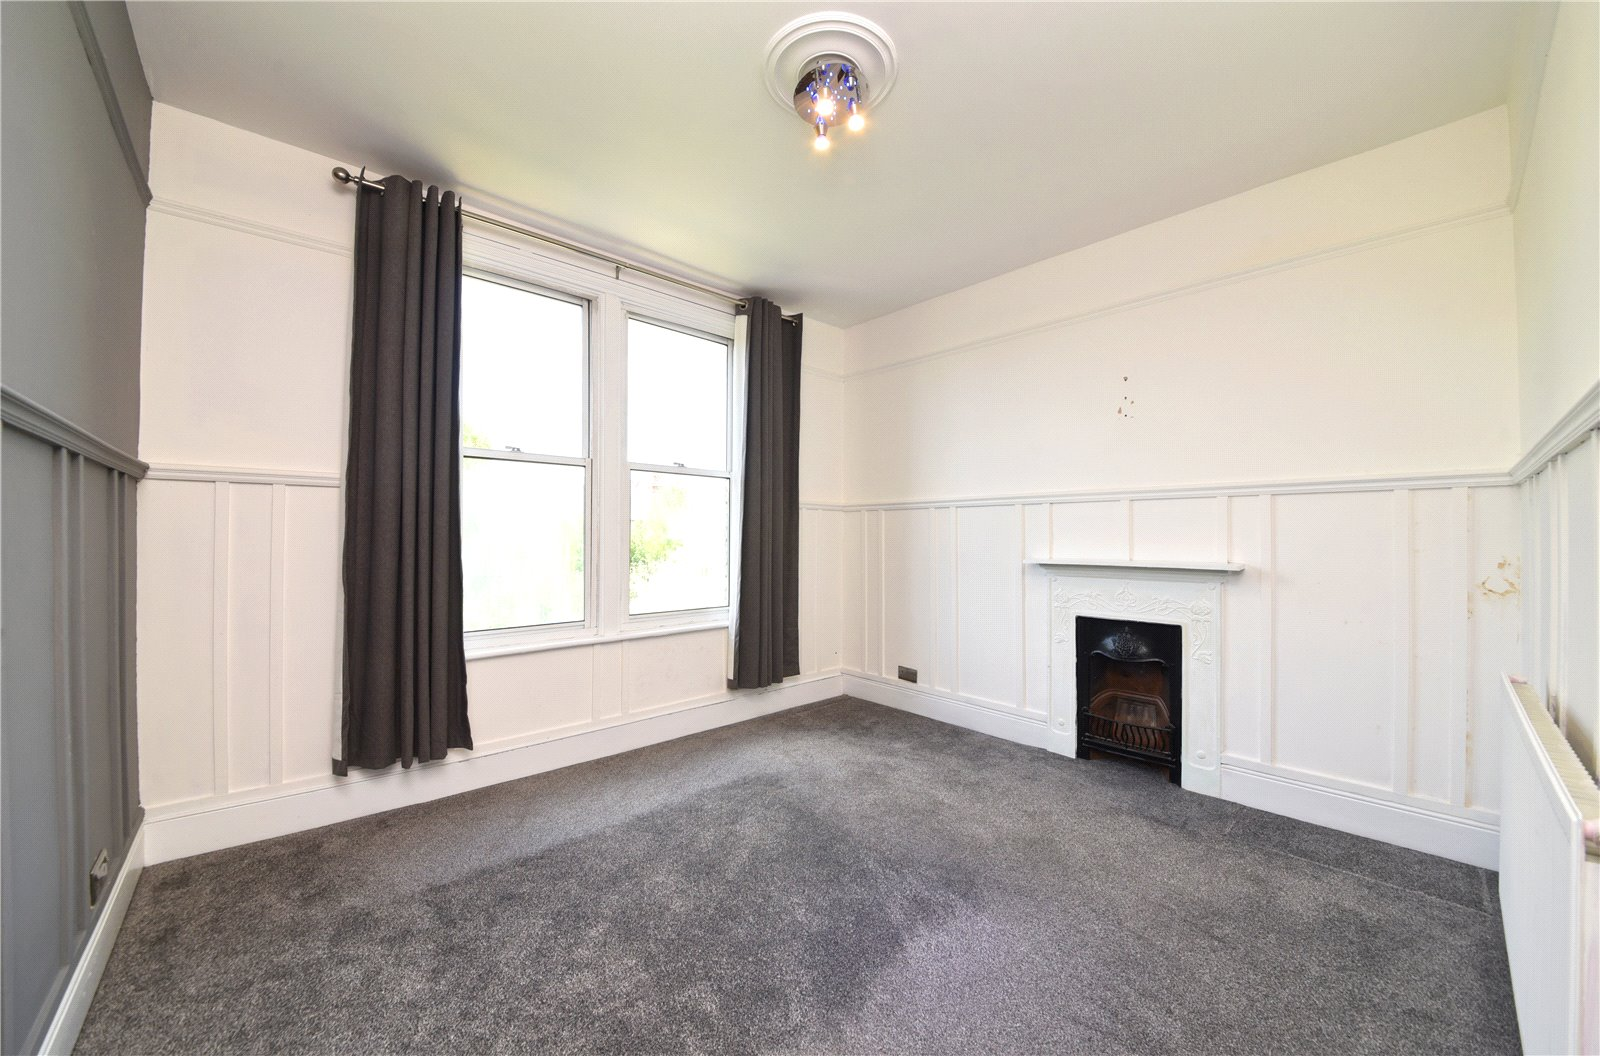 4 bed house for sale in Finchley, N3 2AR  - Property Image 9